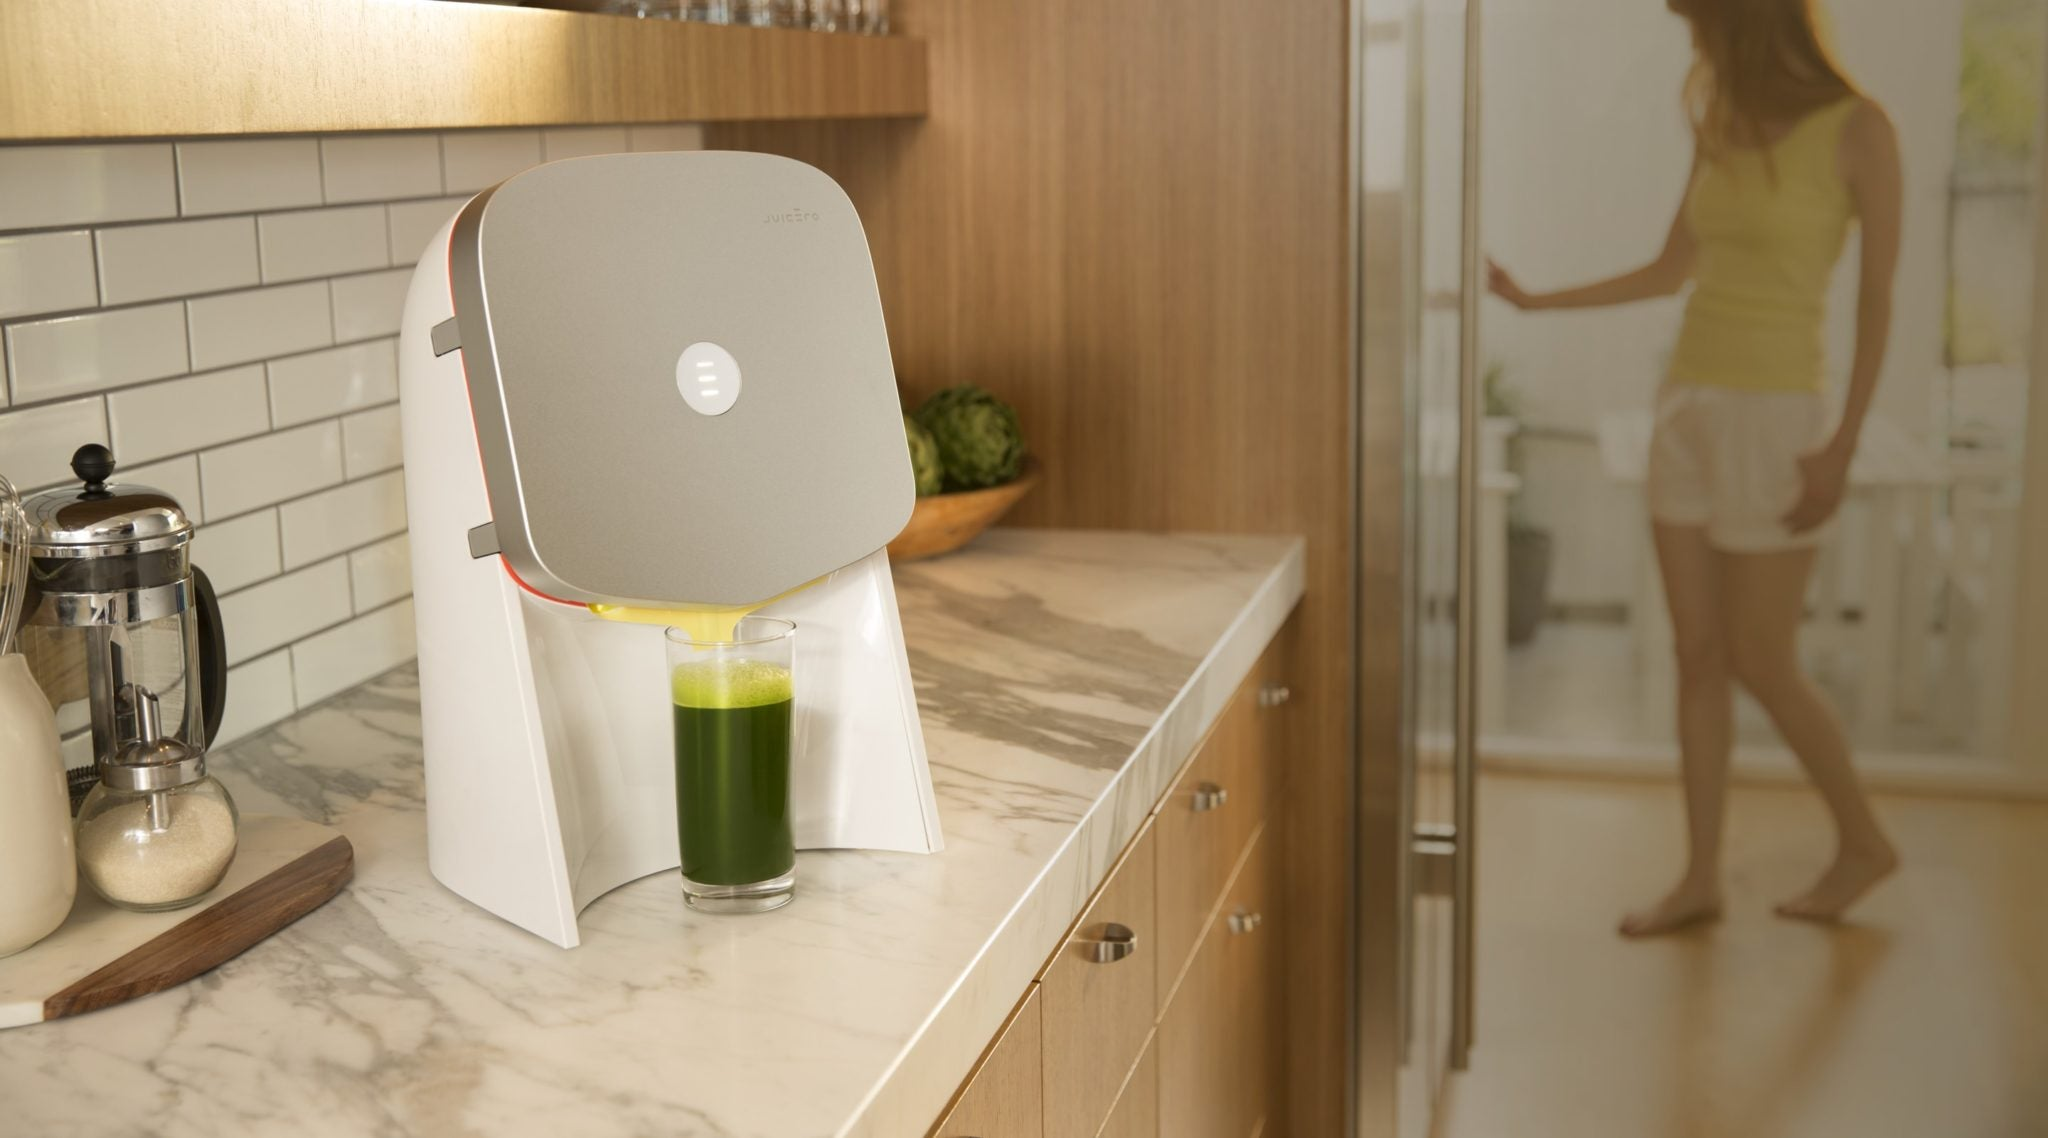 Silicon Valley's Hottest Overpriced Juicer Apparently Works Worse Than Your Bare Hands